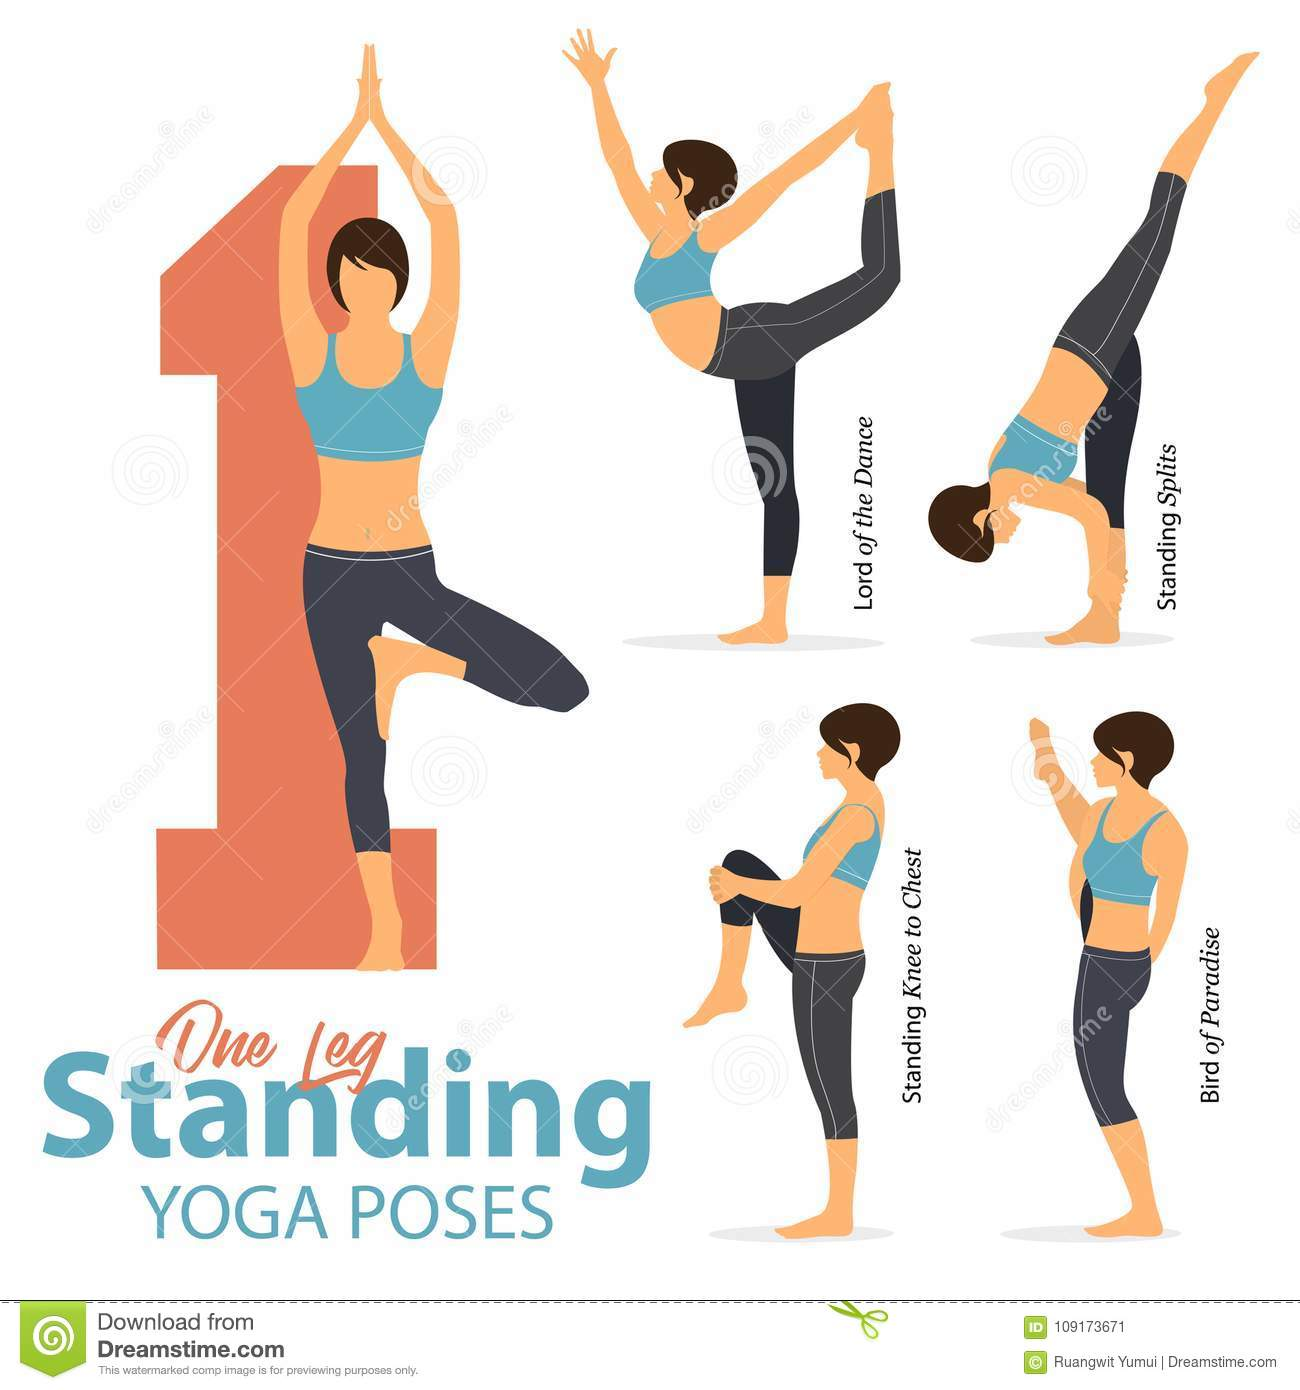 A Set Of Yoga Postures Female Figures For Infographic 5 Yoga In One Leg Standing Poses In Flat Design Woman Figures Exercise Stock Vector Illustration Of Fitness Nature 109173671